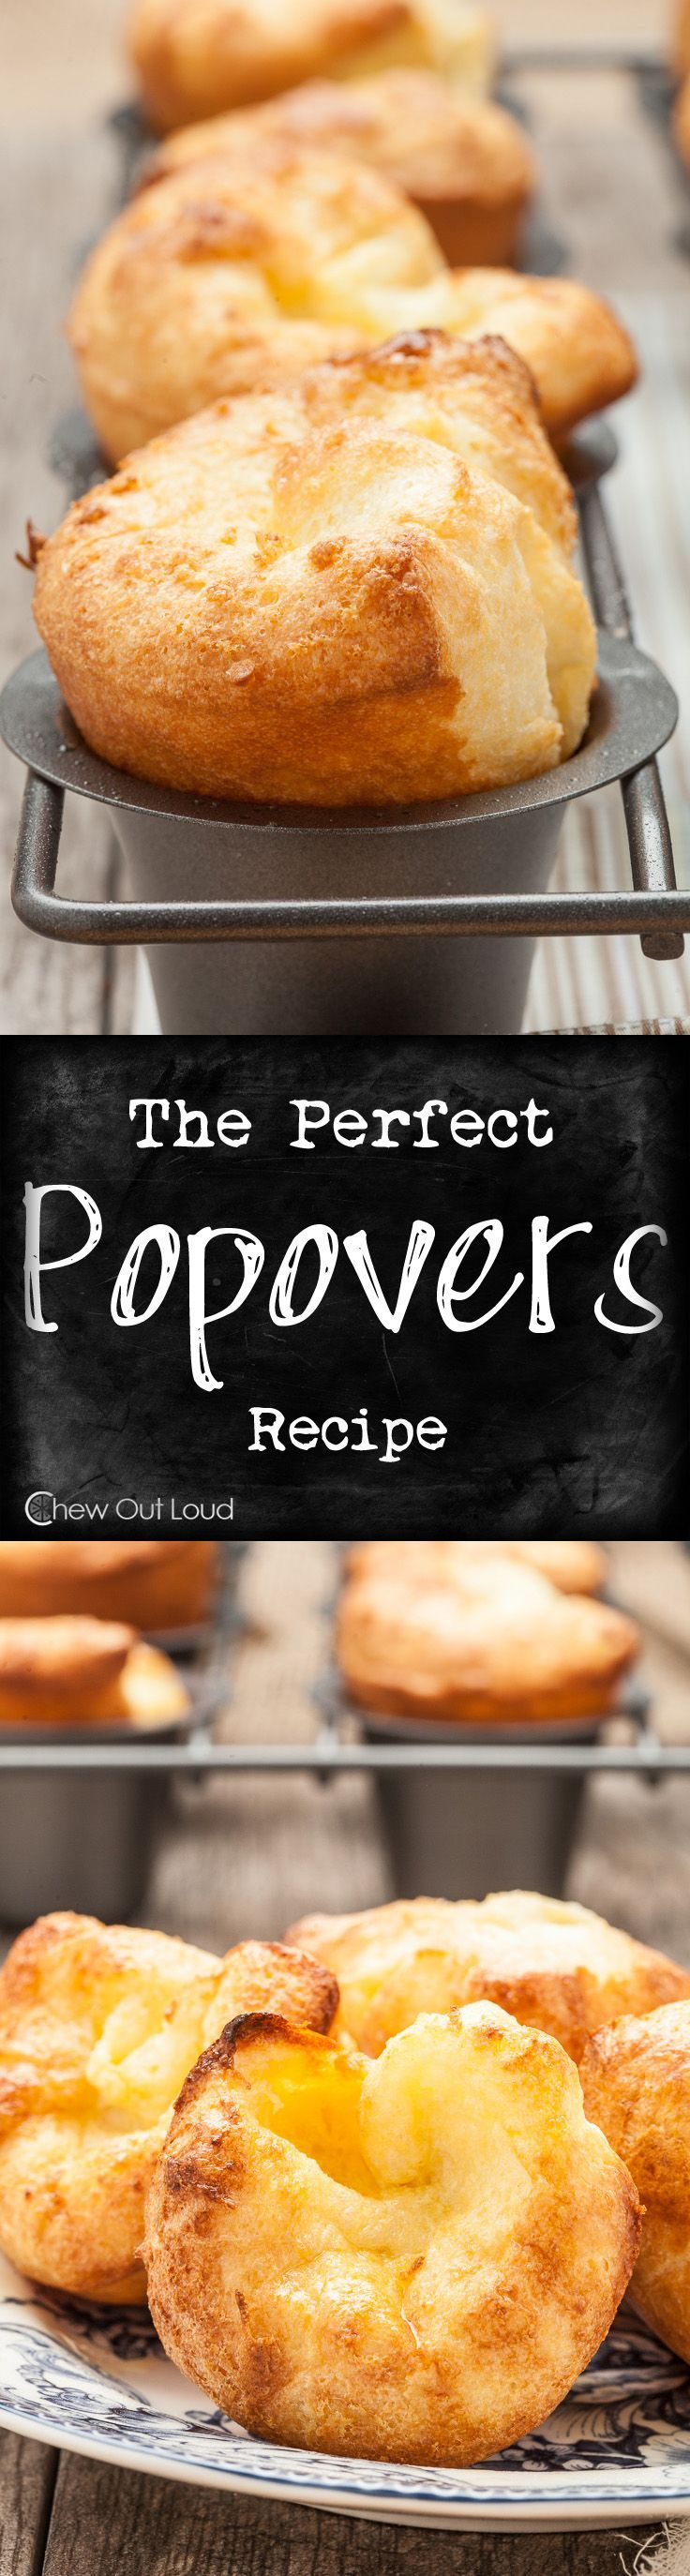 The Perfect Popovers. Only 5 ingredients. Fluffy, puffy, irresistible. Golden crisp exterior, chewy soft center.